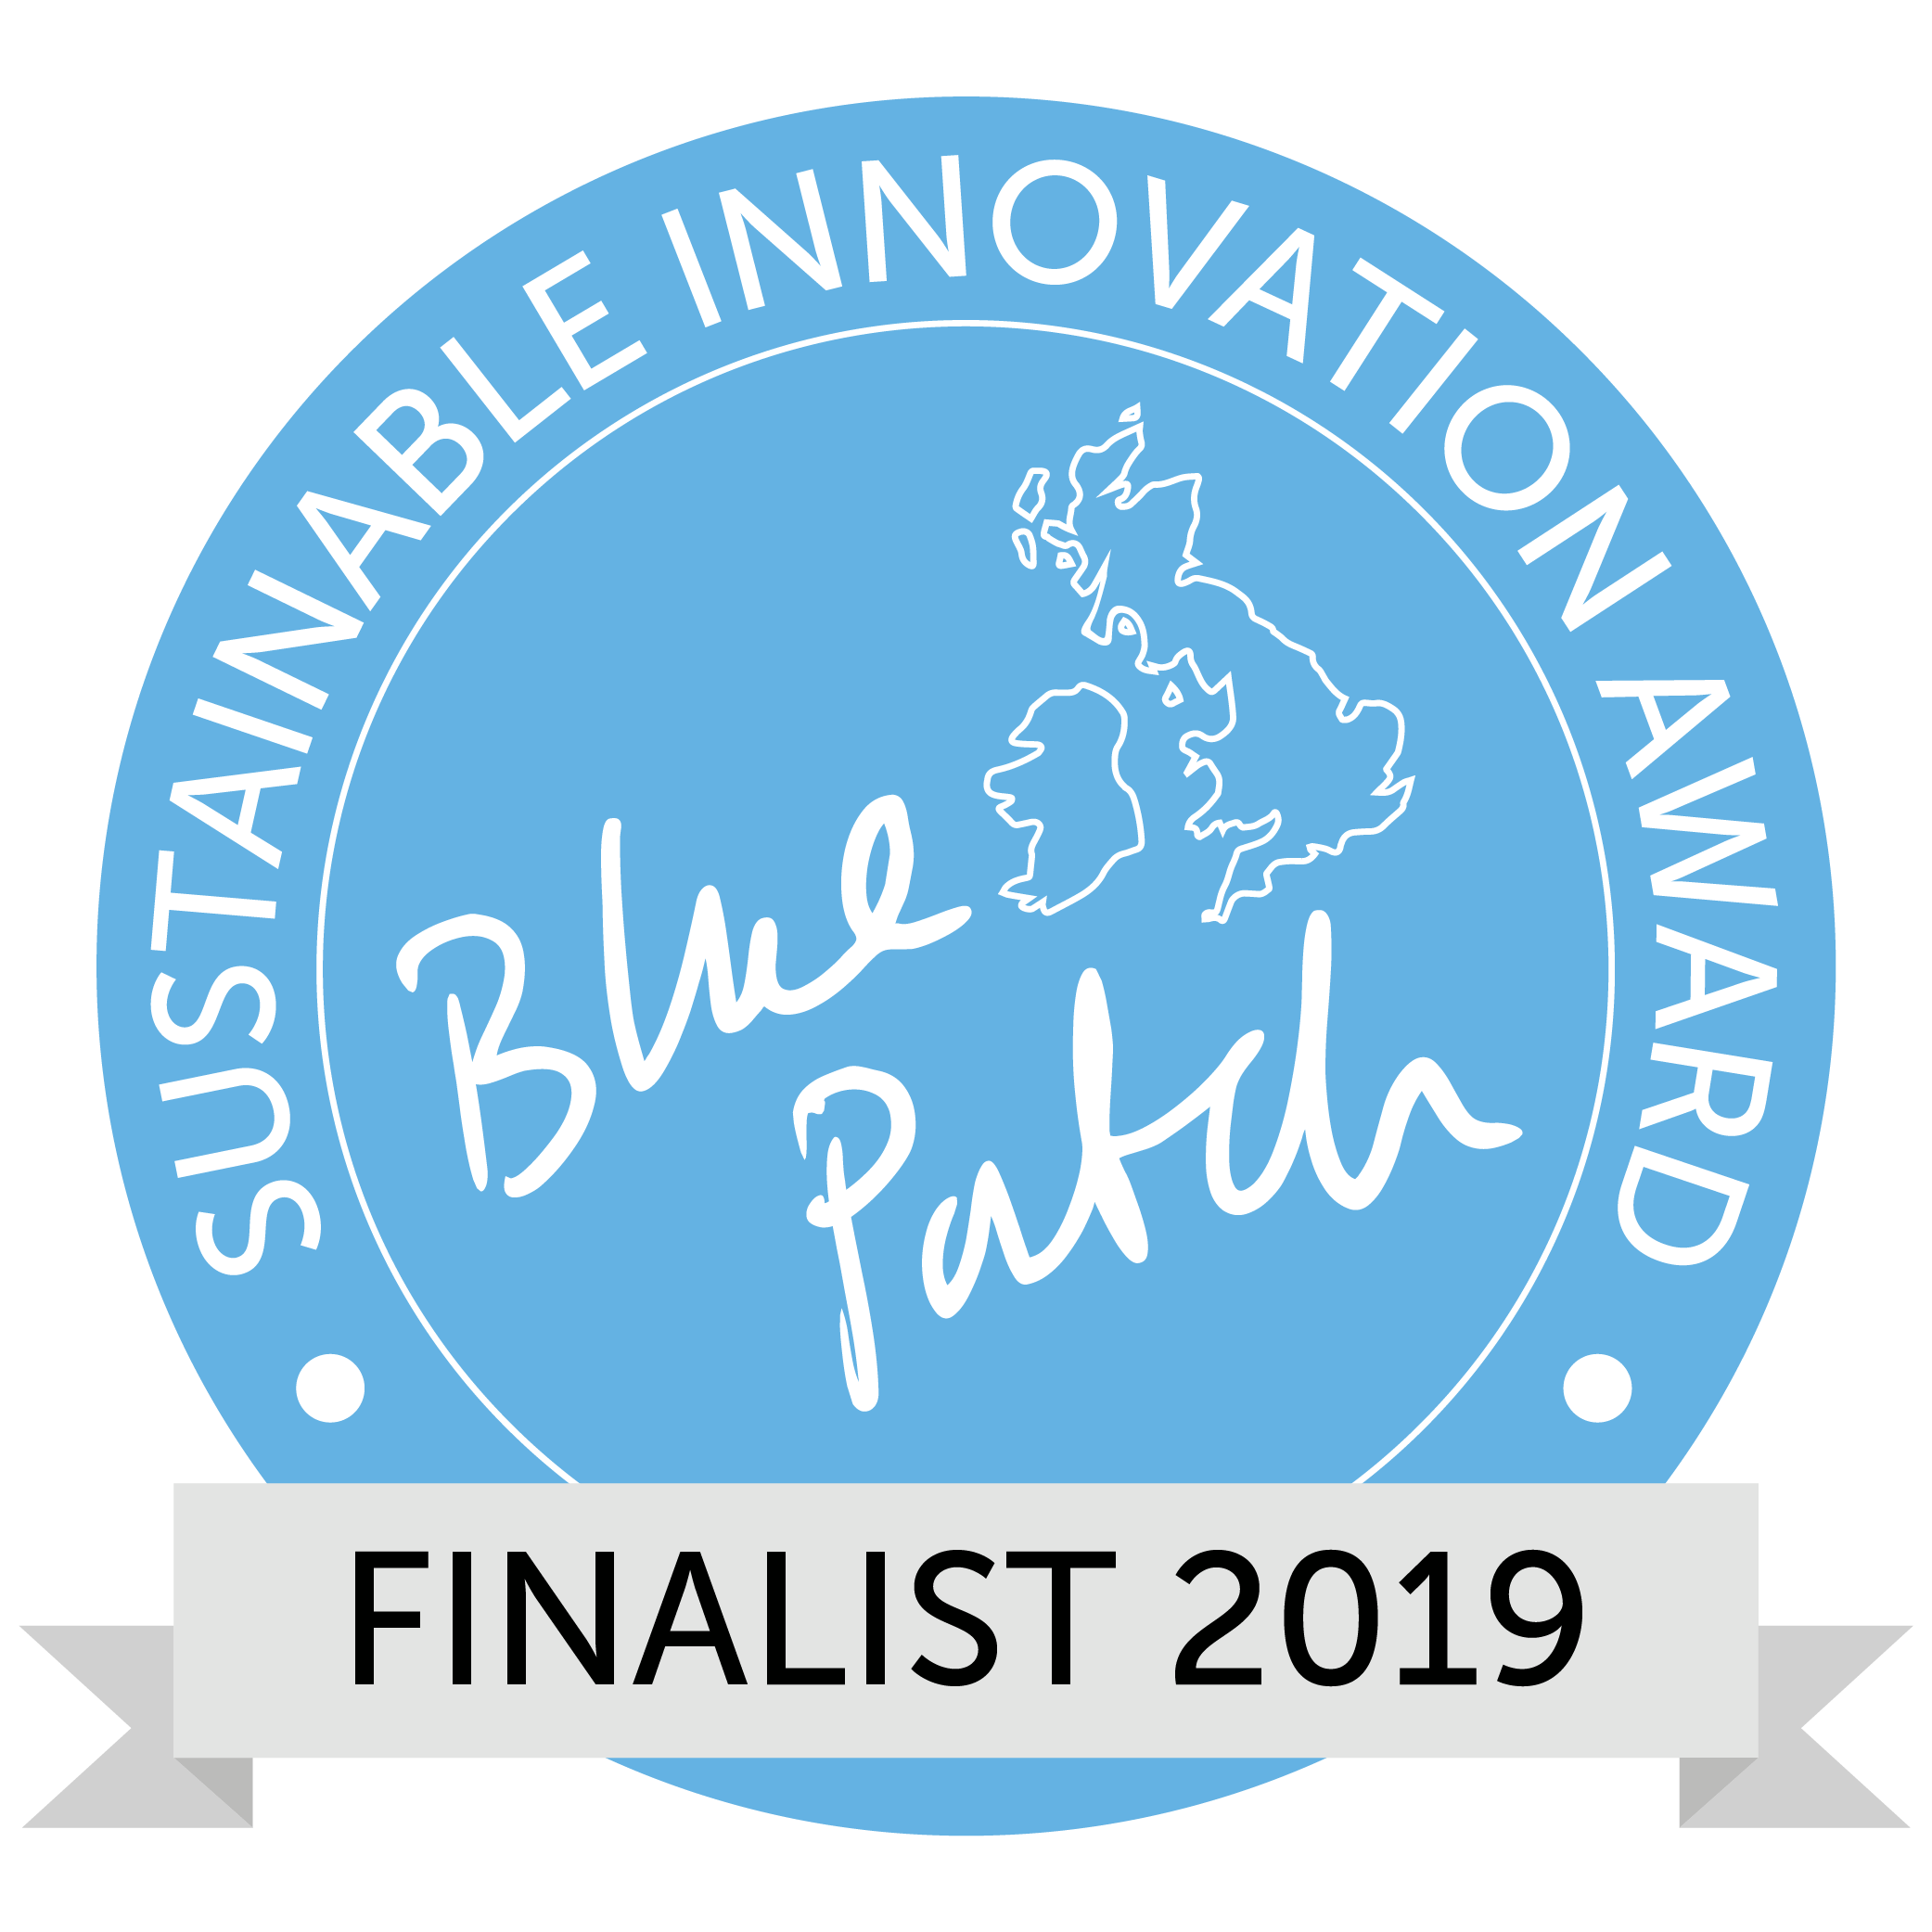 Sustainable Innovation Award 2019-02.png